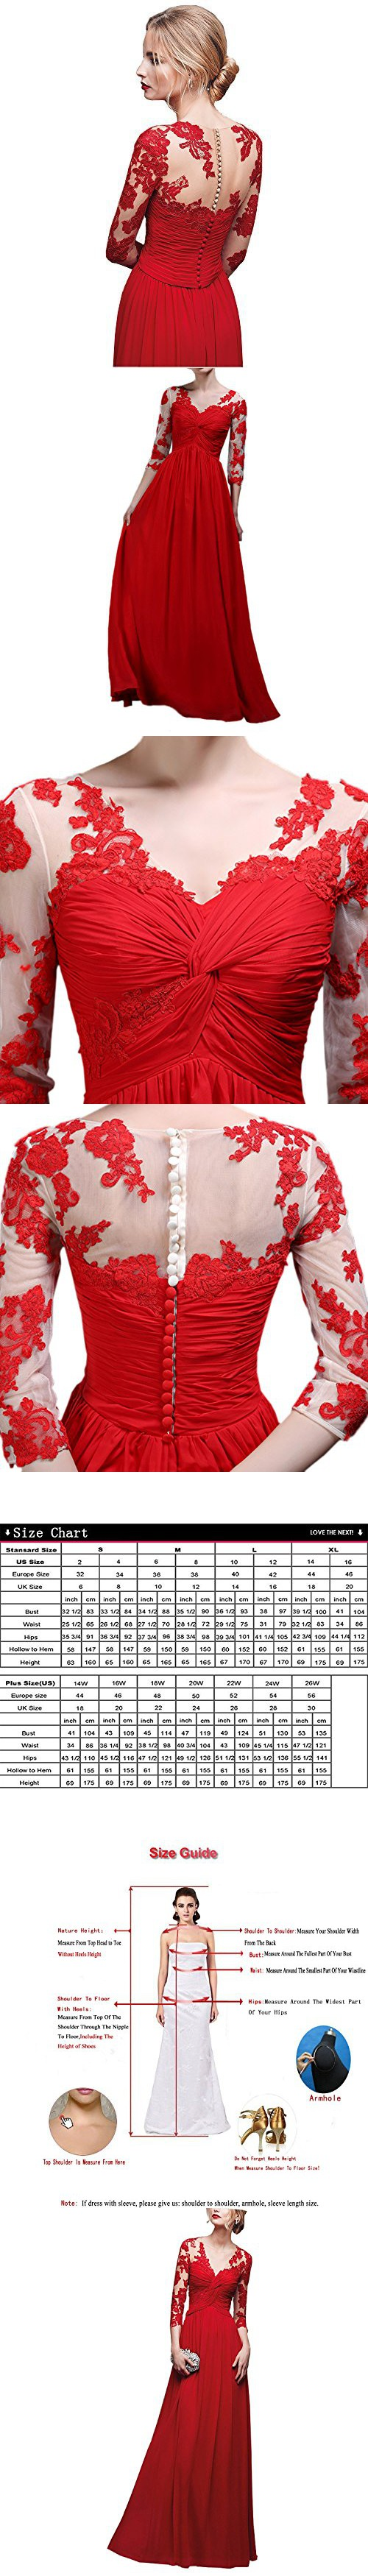 Abaowedding long lace deep v long sleeve evening dress red and ivory